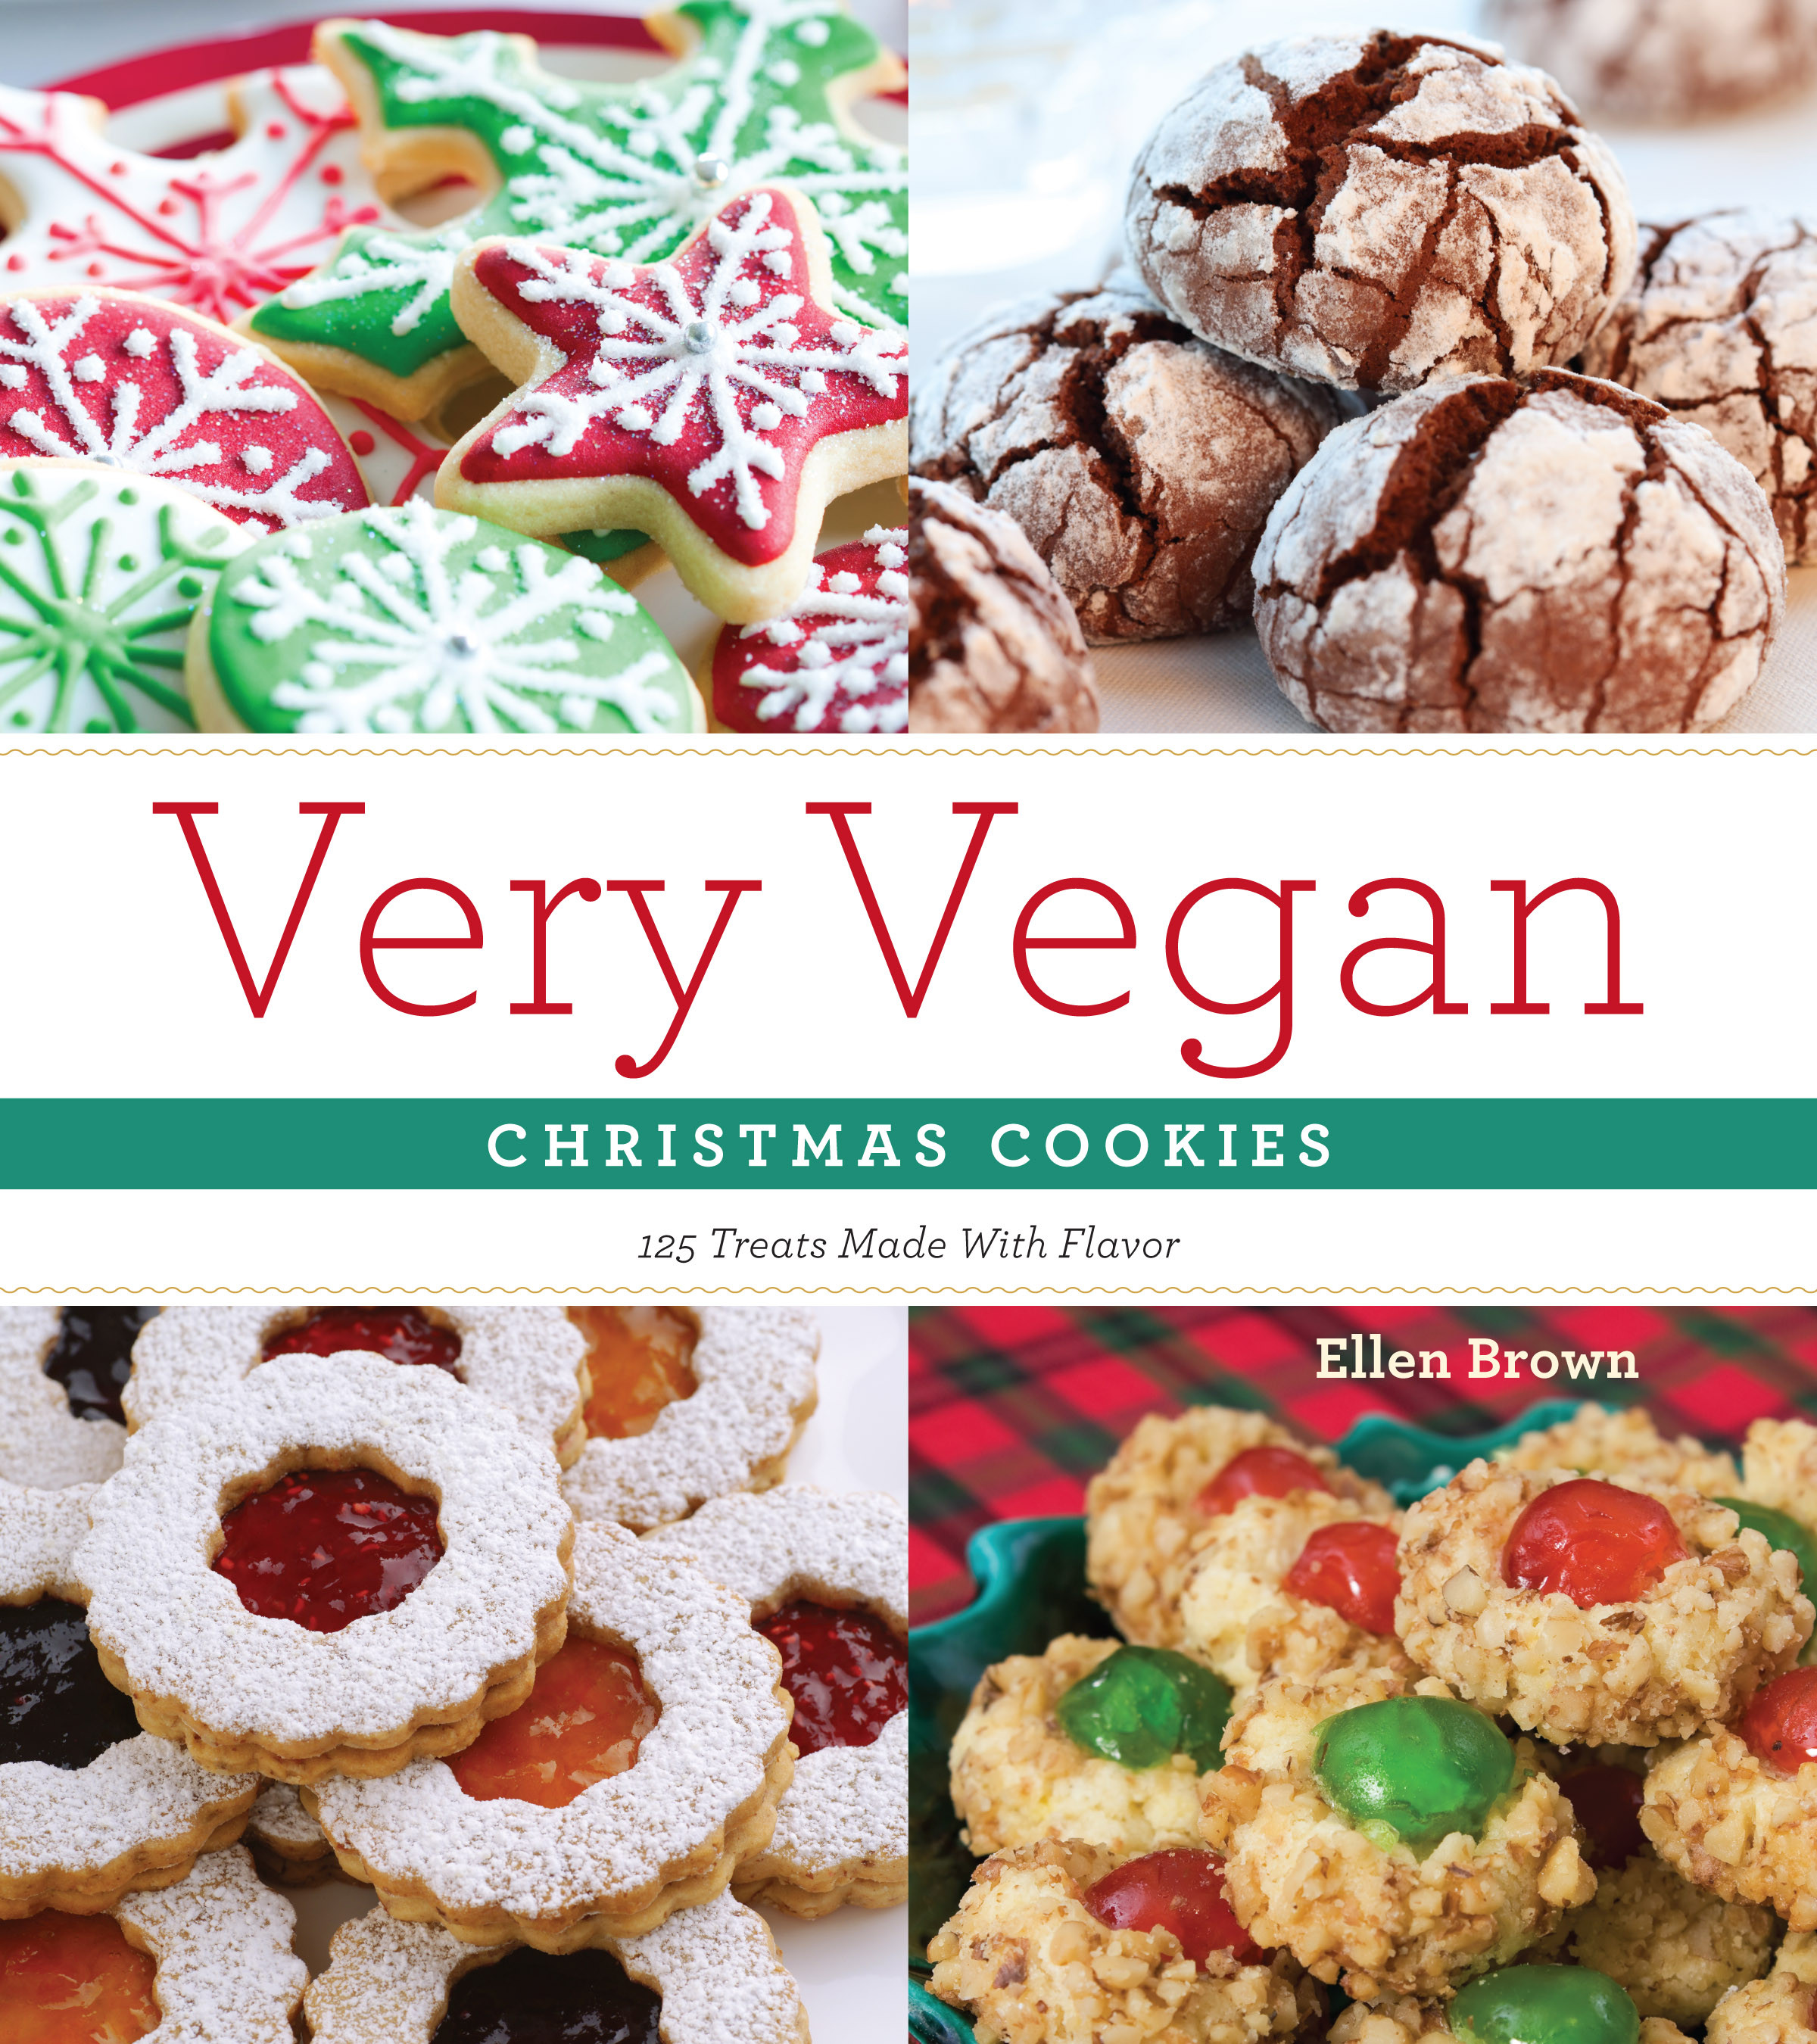 Christmas Cookies Book  Very Vegan Christmas Cookies